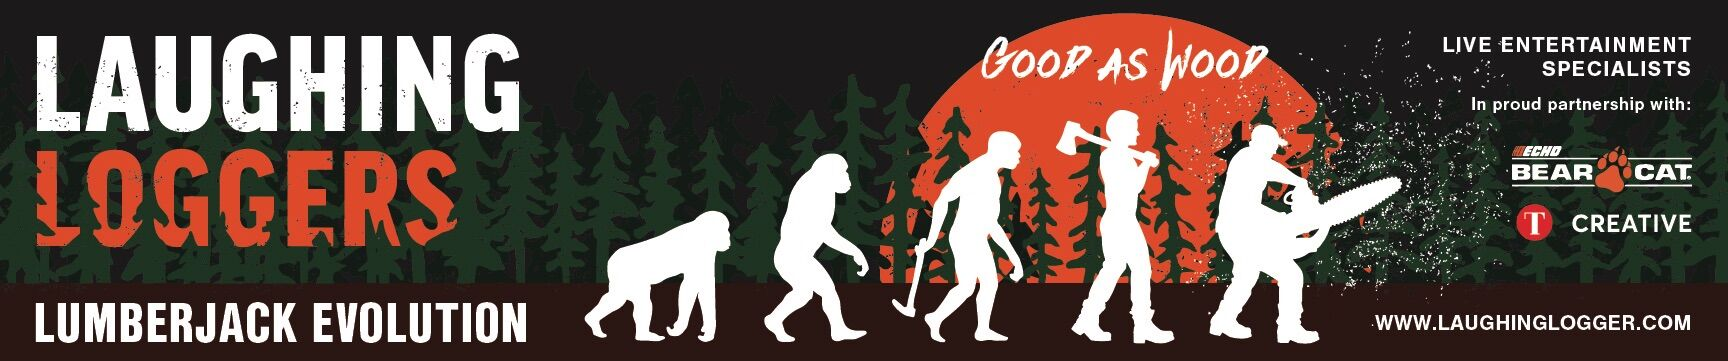 Laughing-Loggers-Banner